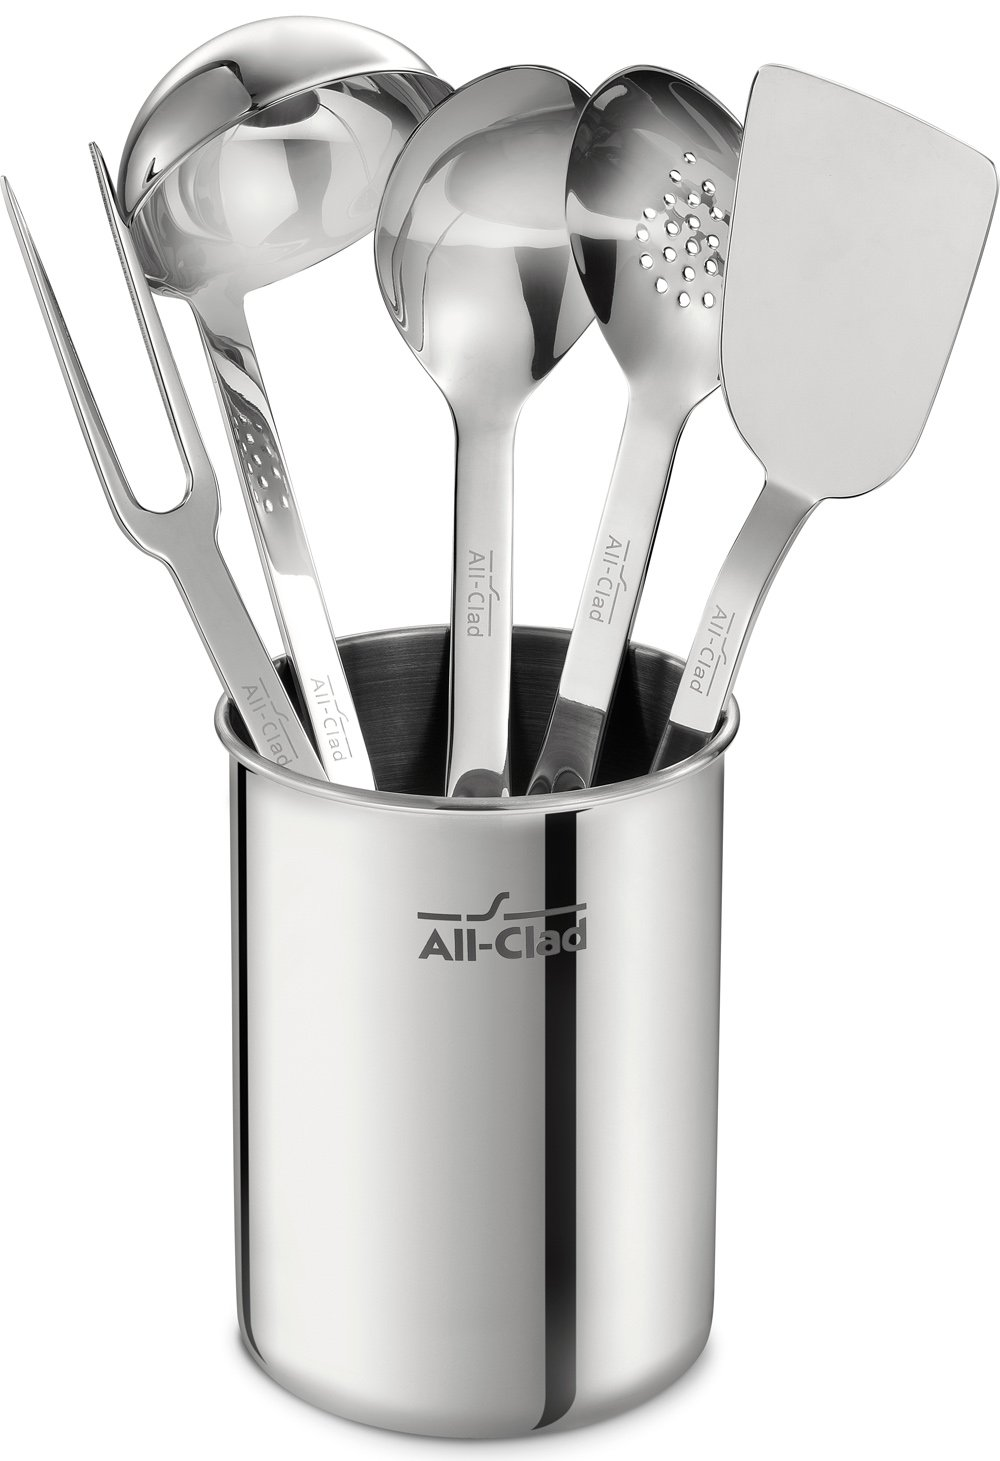 Amazon.com: All Clad TSET1 Stainless Steel Kitchen Tool Set Caddy Included,  6 Piece, Silver: Kitchen U0026 Dining